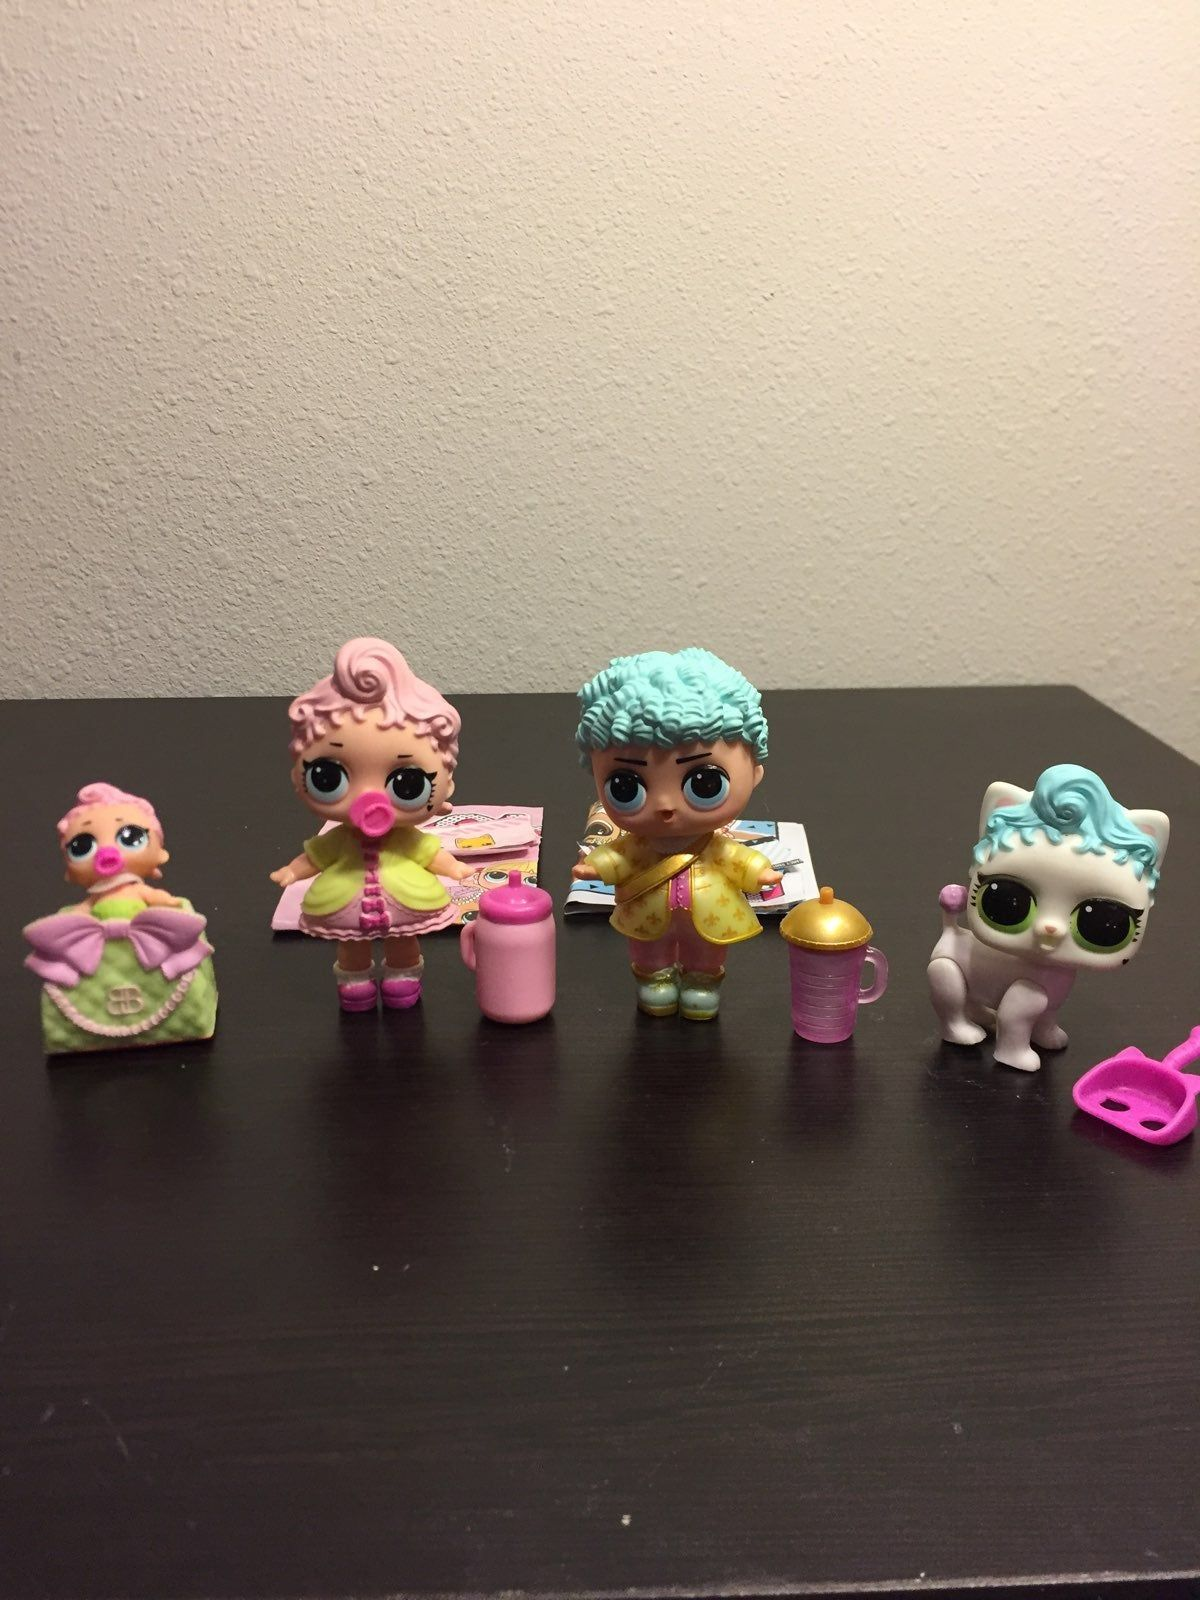 This Is The Lol Royal High Ney Family Includes The Royal Highney Girl Doll Boy Doll Lil And Pet Paper Work For The Girl And Boy Doll Girl Dolls Playset